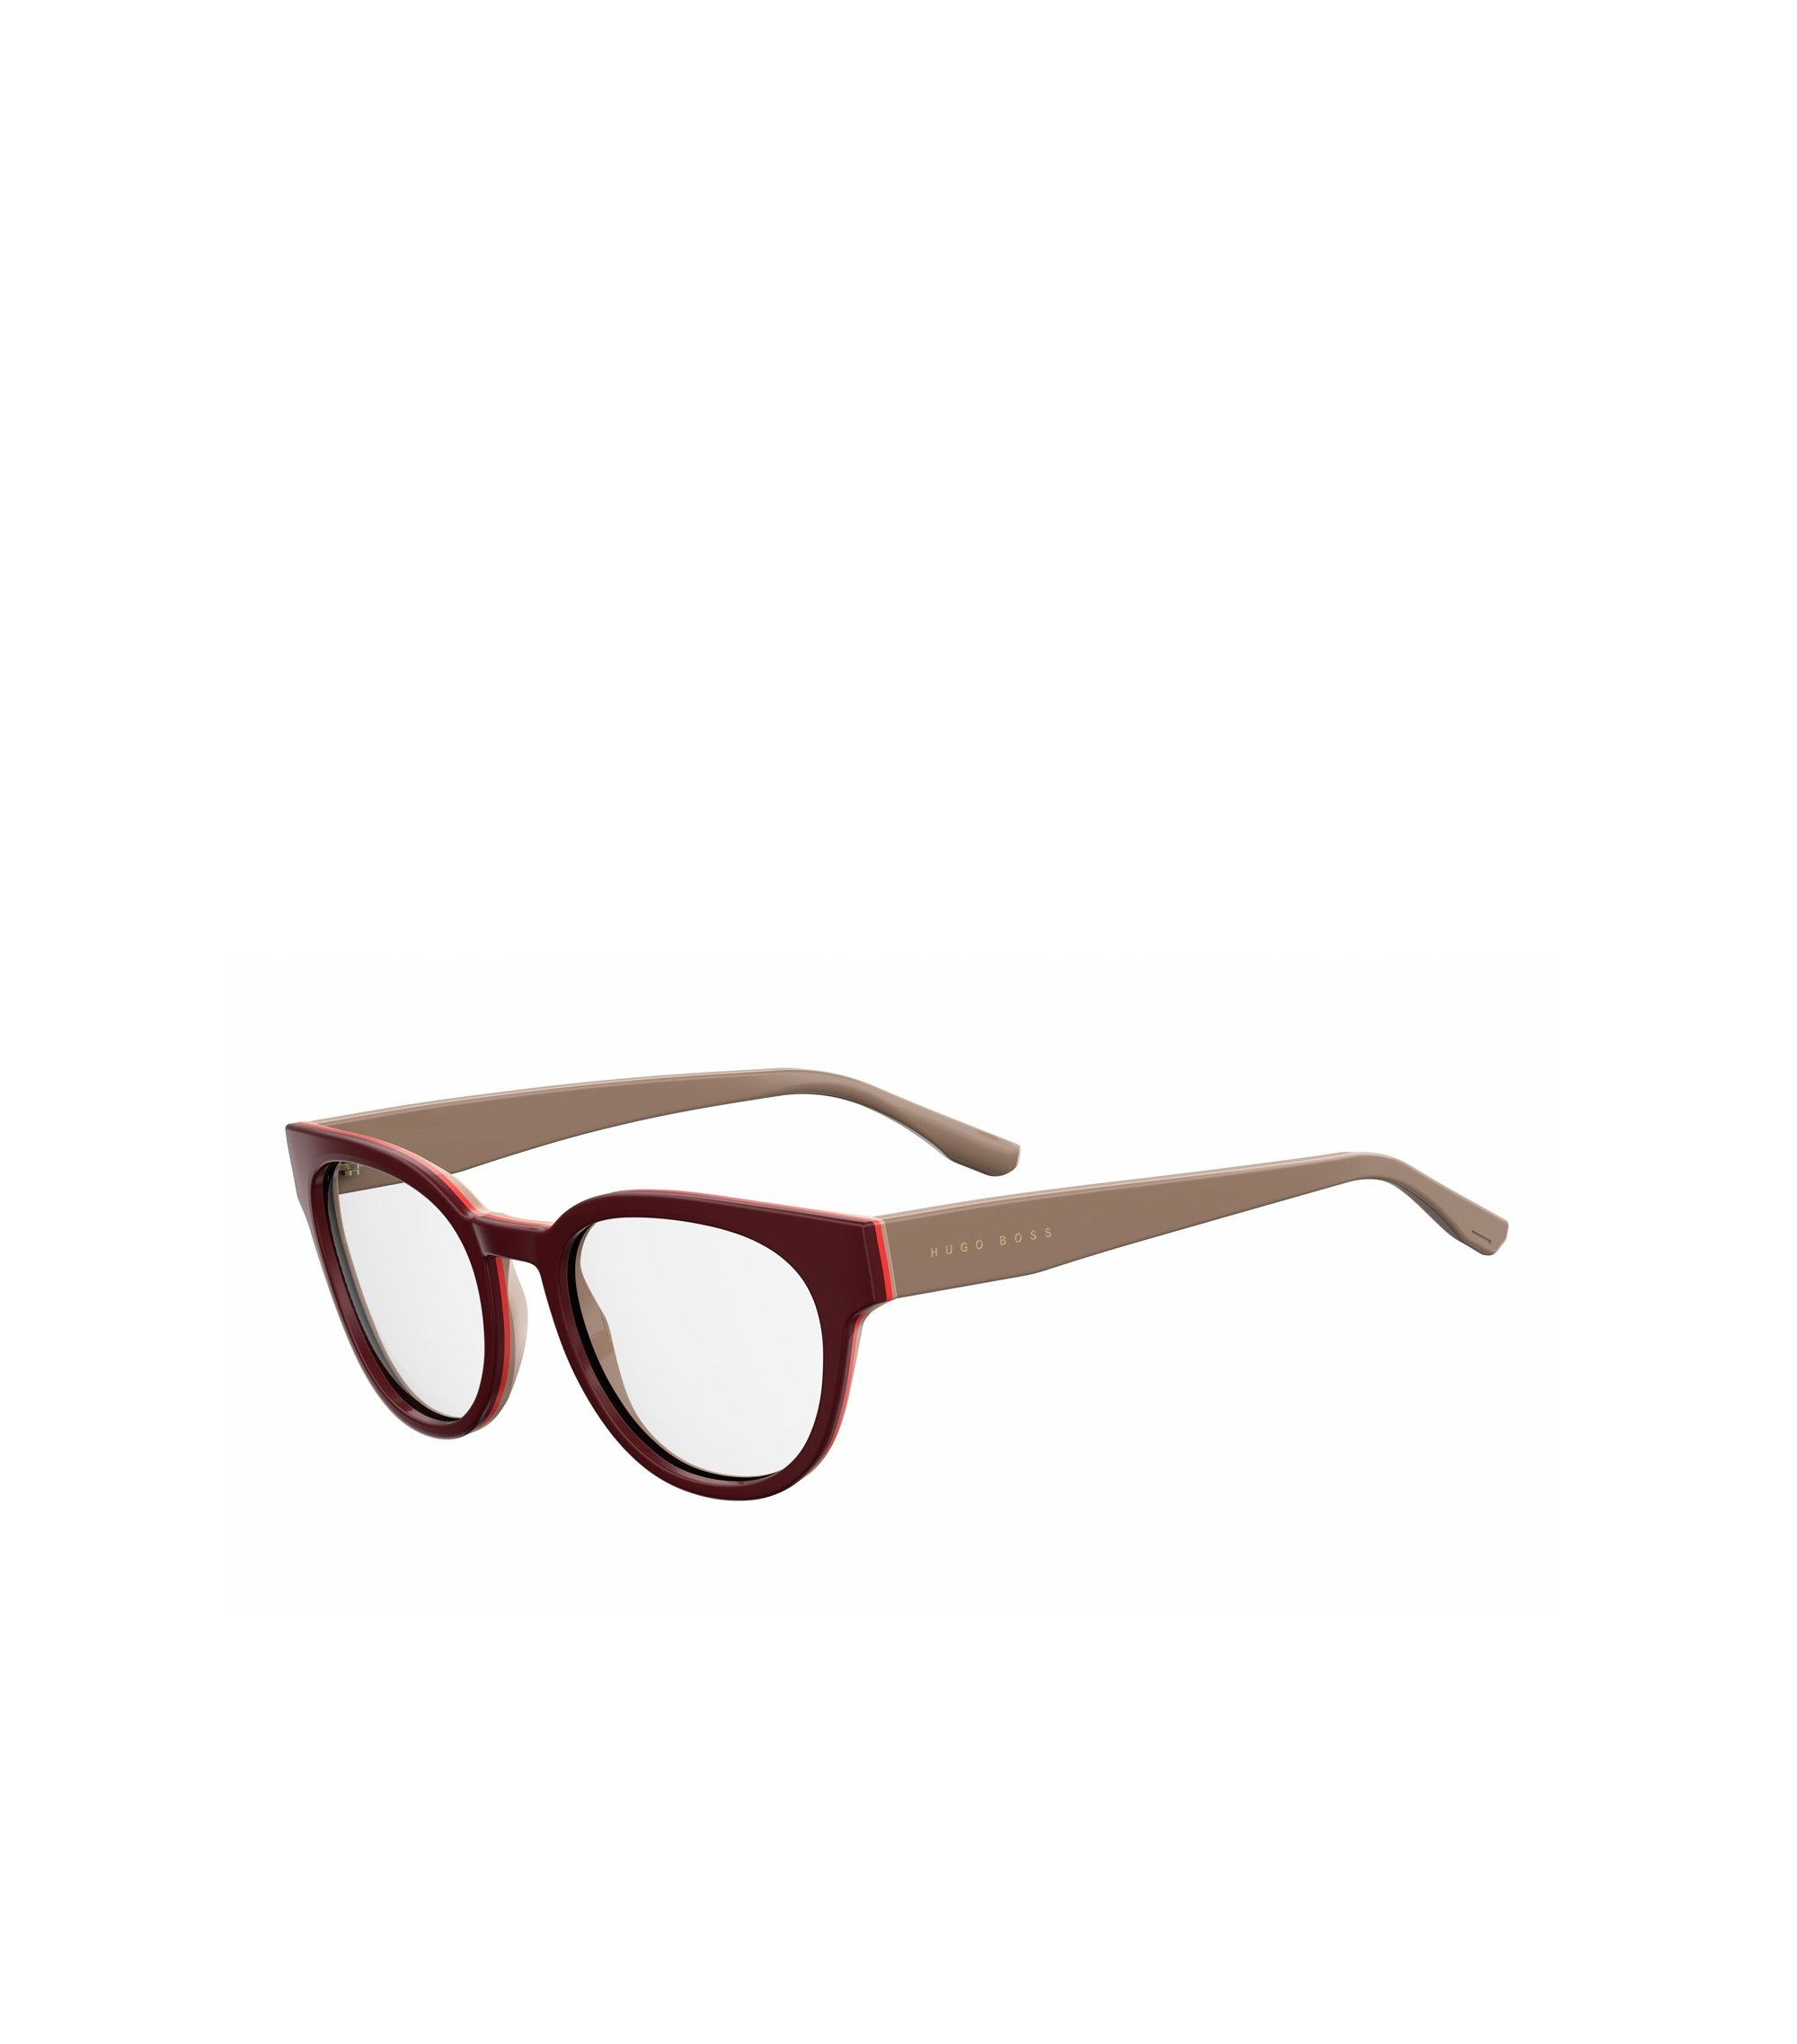 Burgundy Acetate Round Optical Frames | BOSS 0889 0U2, Assorted-Pre-Pack